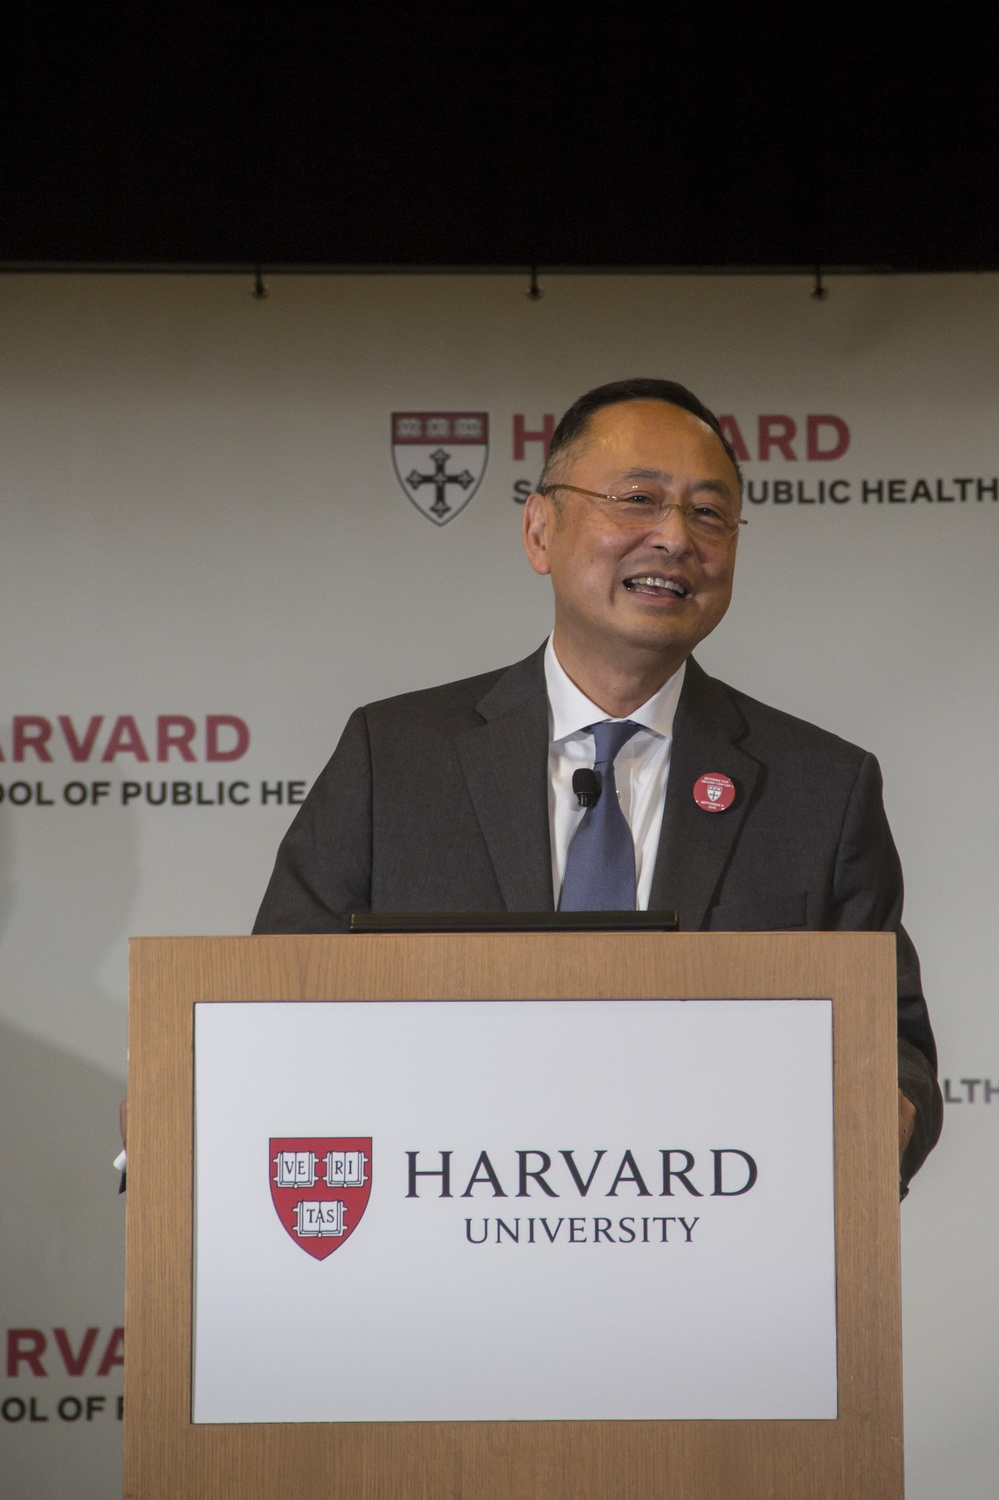 Gerald L. Chan addresses University administrators, donors, and faculty members on Monday afternoon at a ceremony formally unveiling his foundation's $350 million gift to the Harvard School of Public Health.